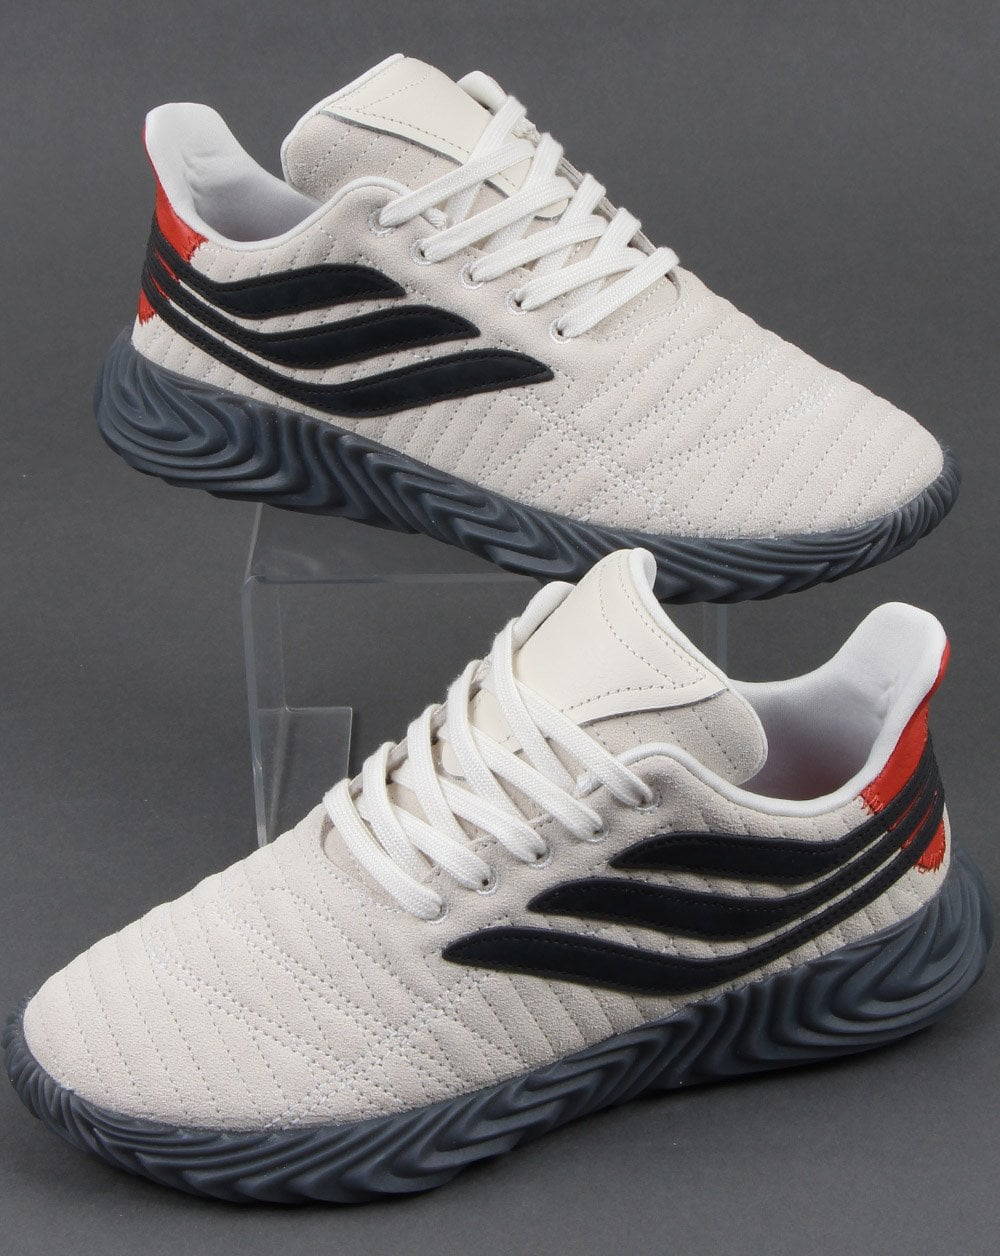 the best attitude b2533 d6aed adidas Trainers Adidas Sobakov Trainers Off White black